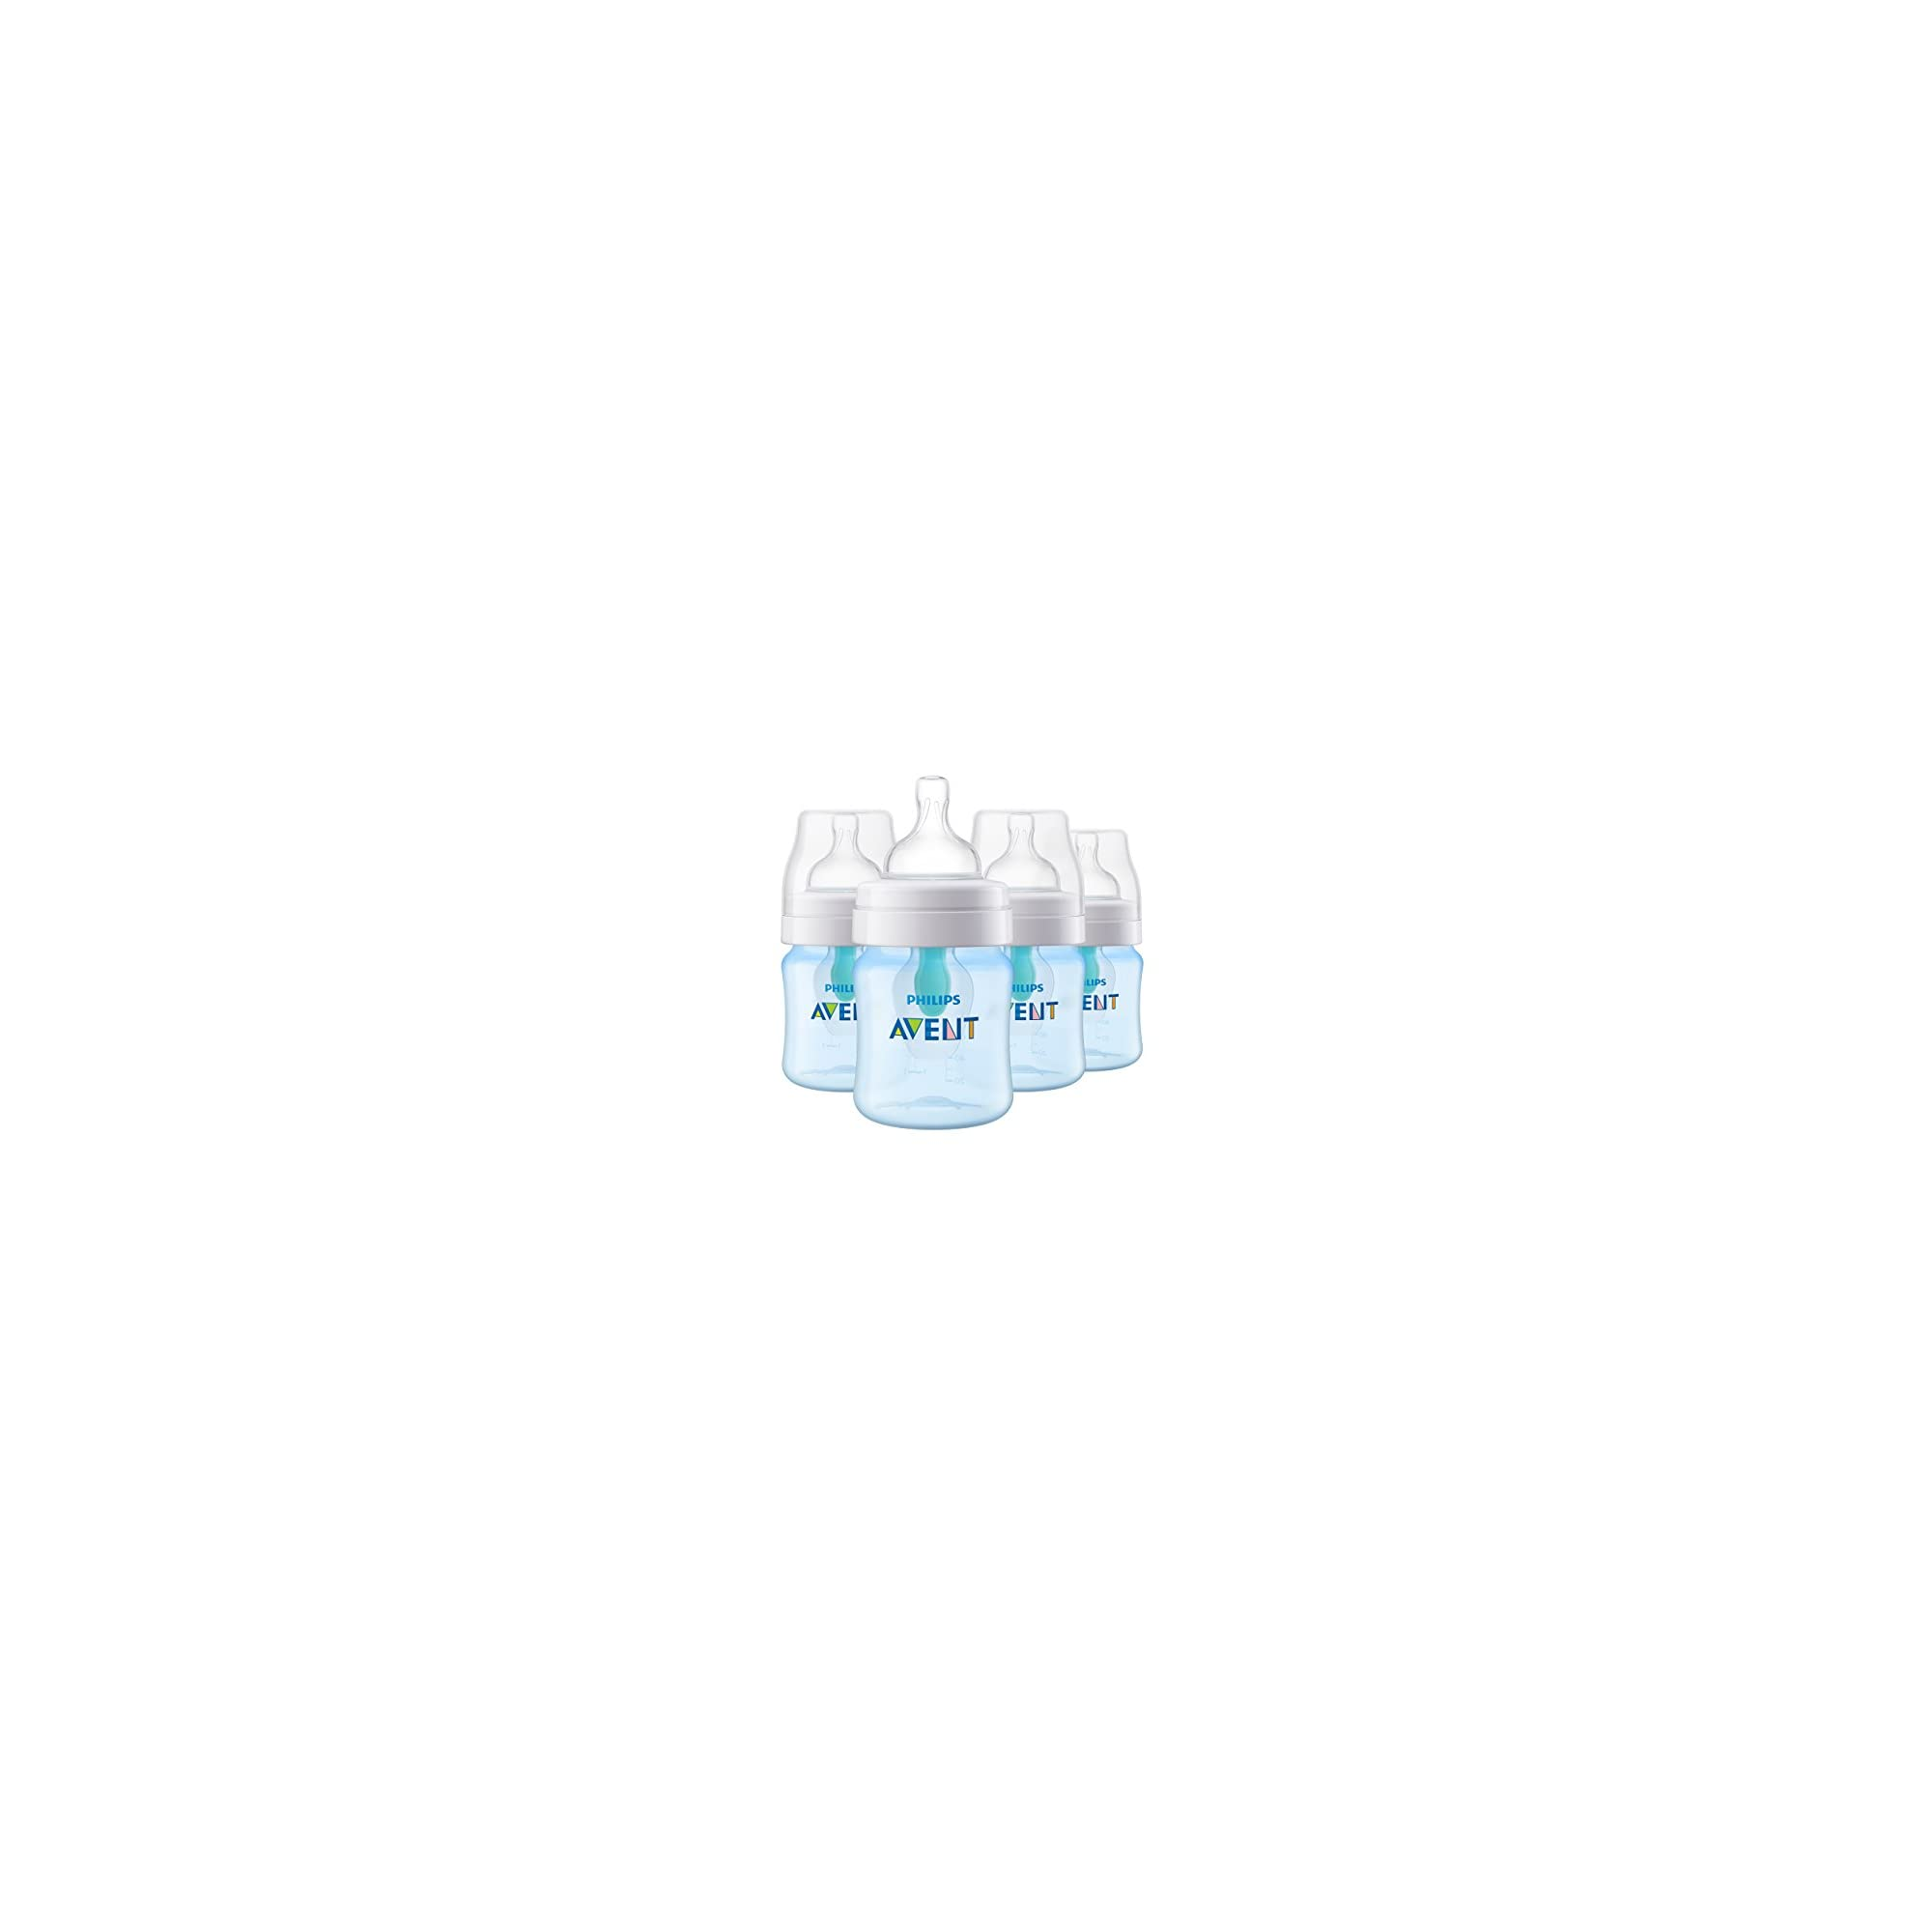 Philips Avent Anti-colic Bottle with AirFree vent 4oz 1pk, SCF400/14